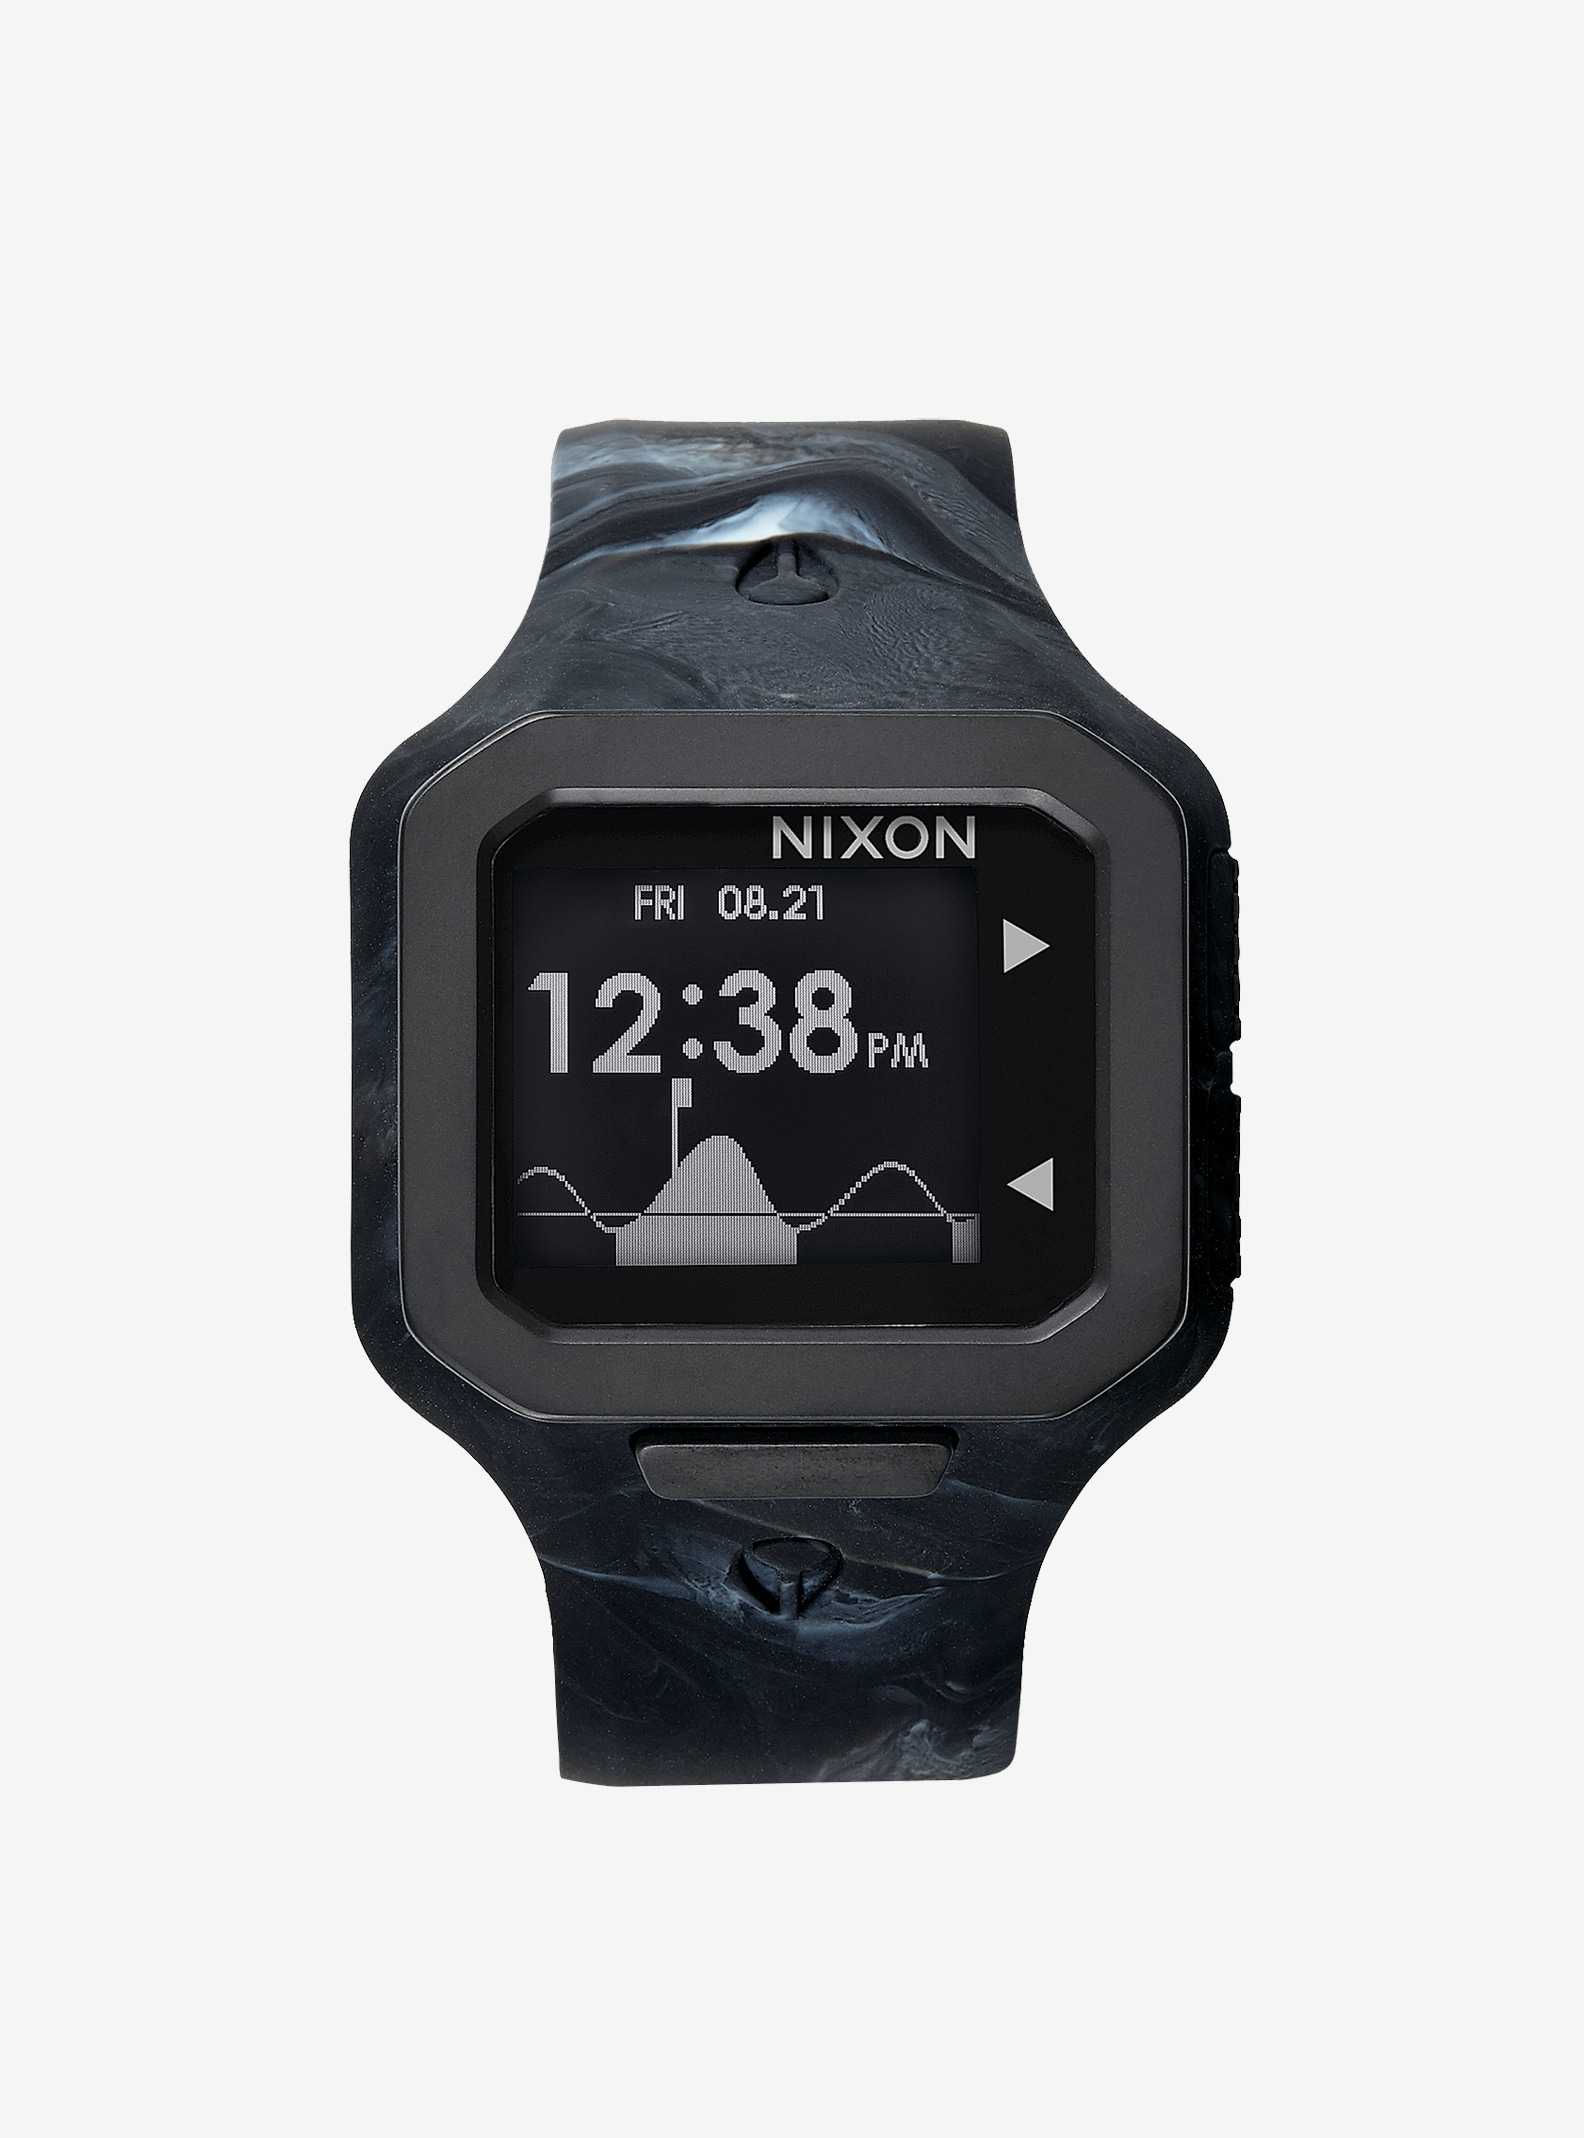 Nixon Supertide Watch shown in Marbled Black Smoke